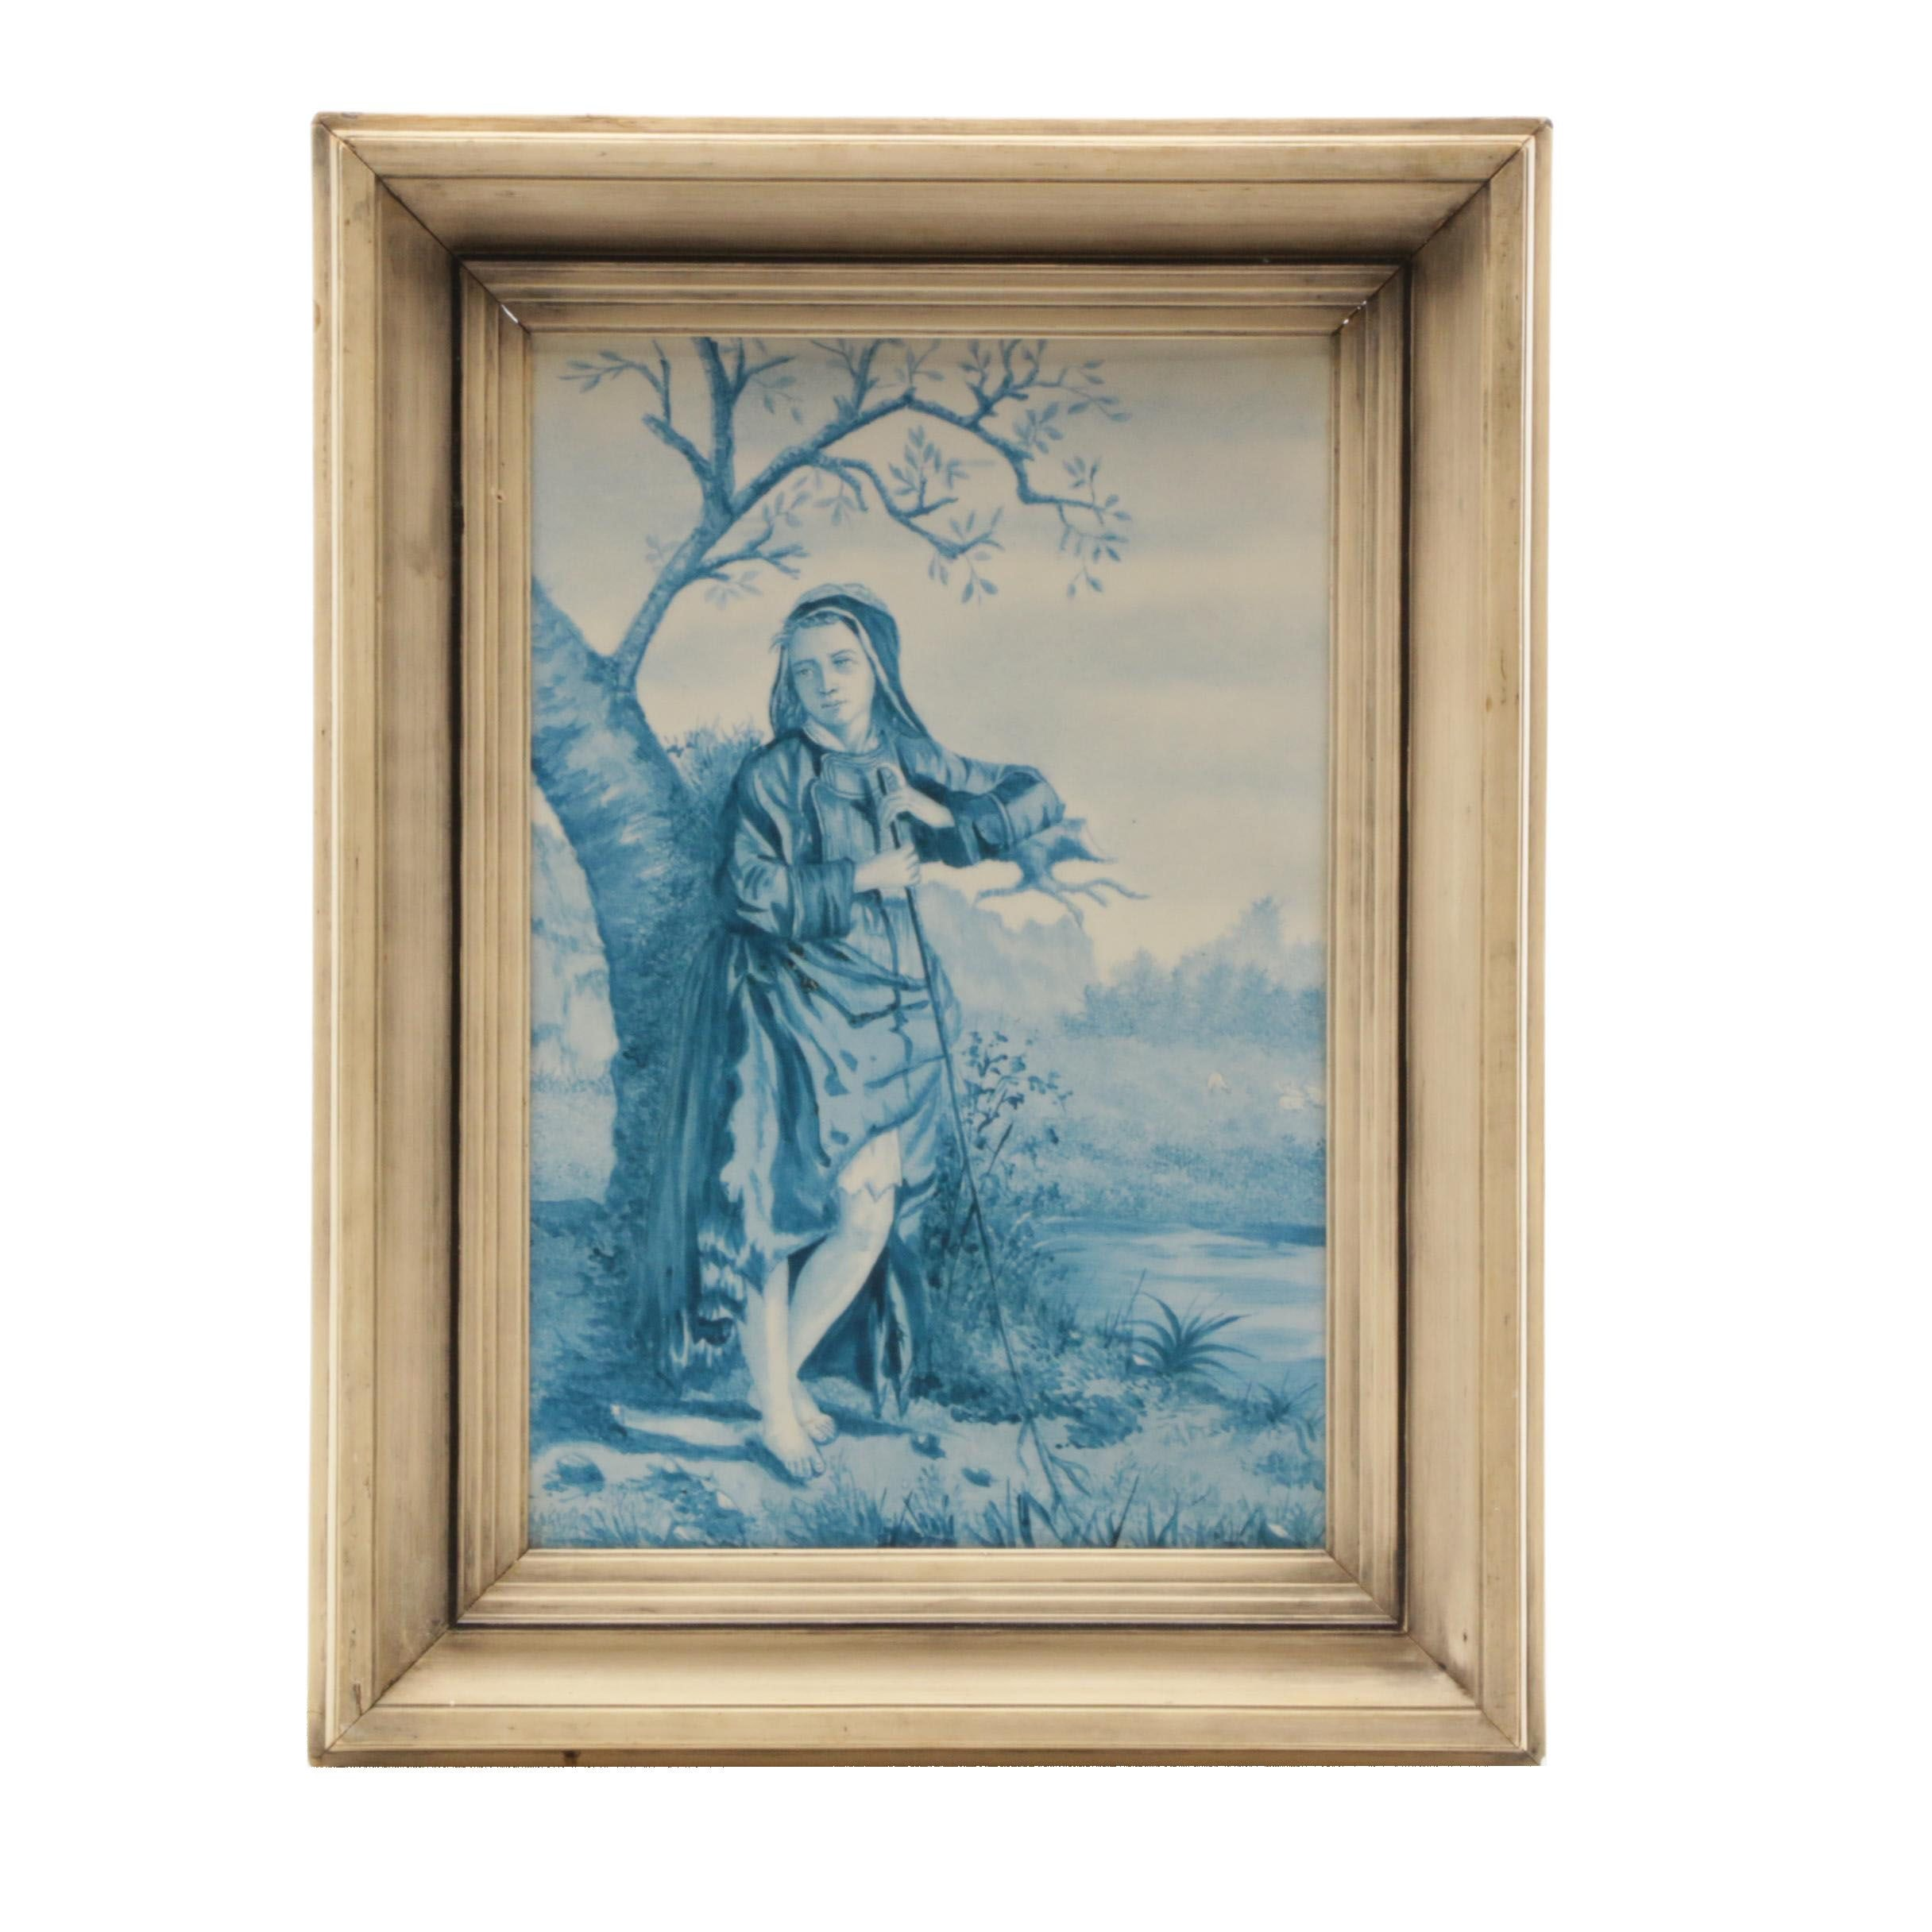 Framed Hand-Painted Delft Style Porcelain Tile with Image of Shepherd